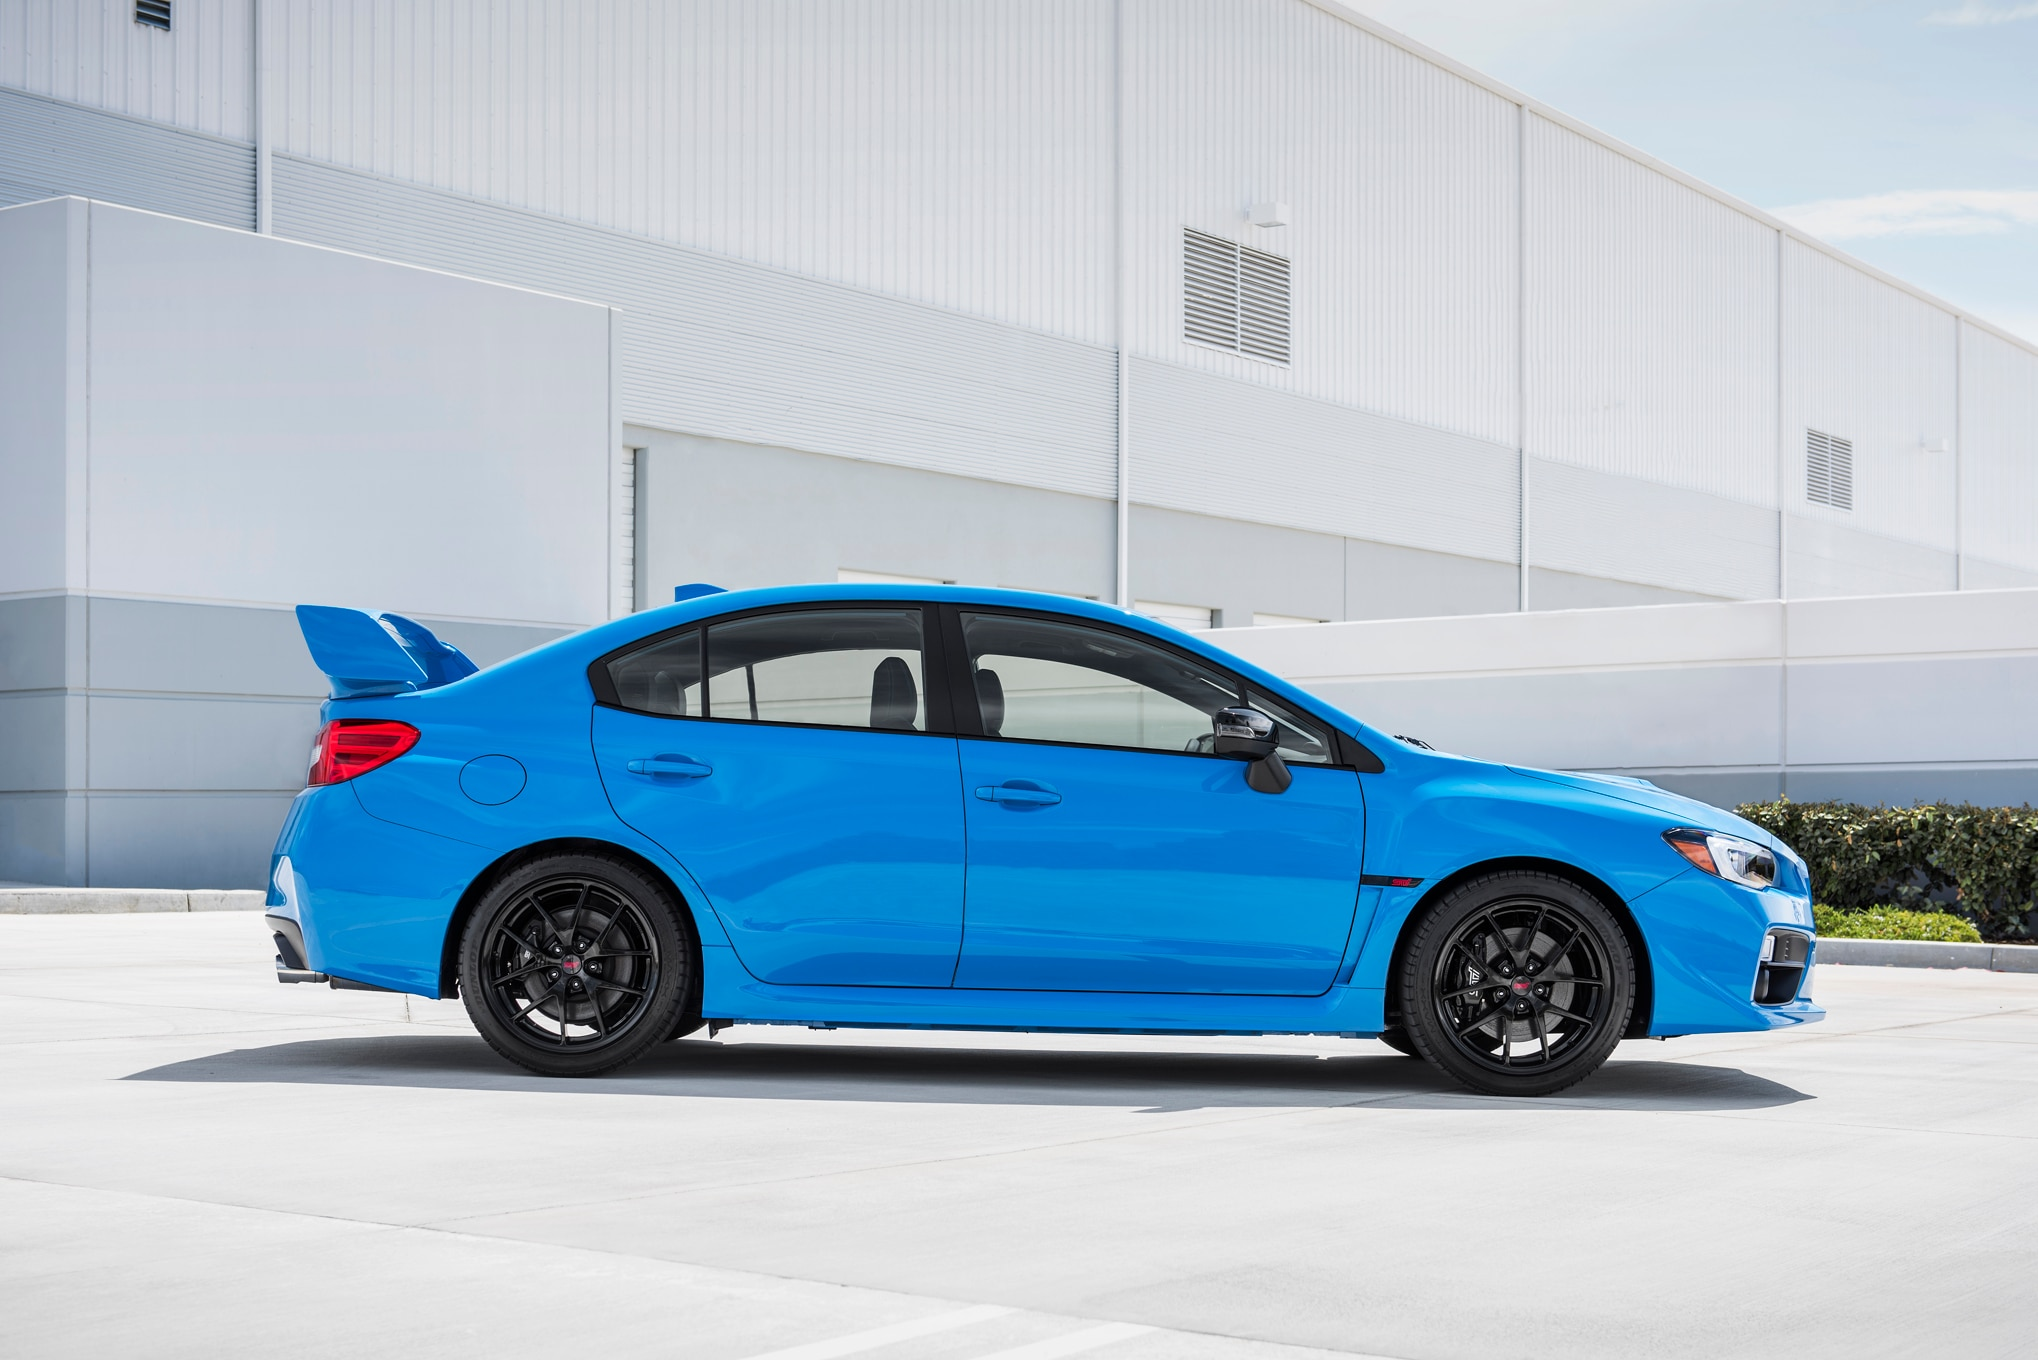 ... back with more on the rumored Subaru WRX STI hybrid as we get it